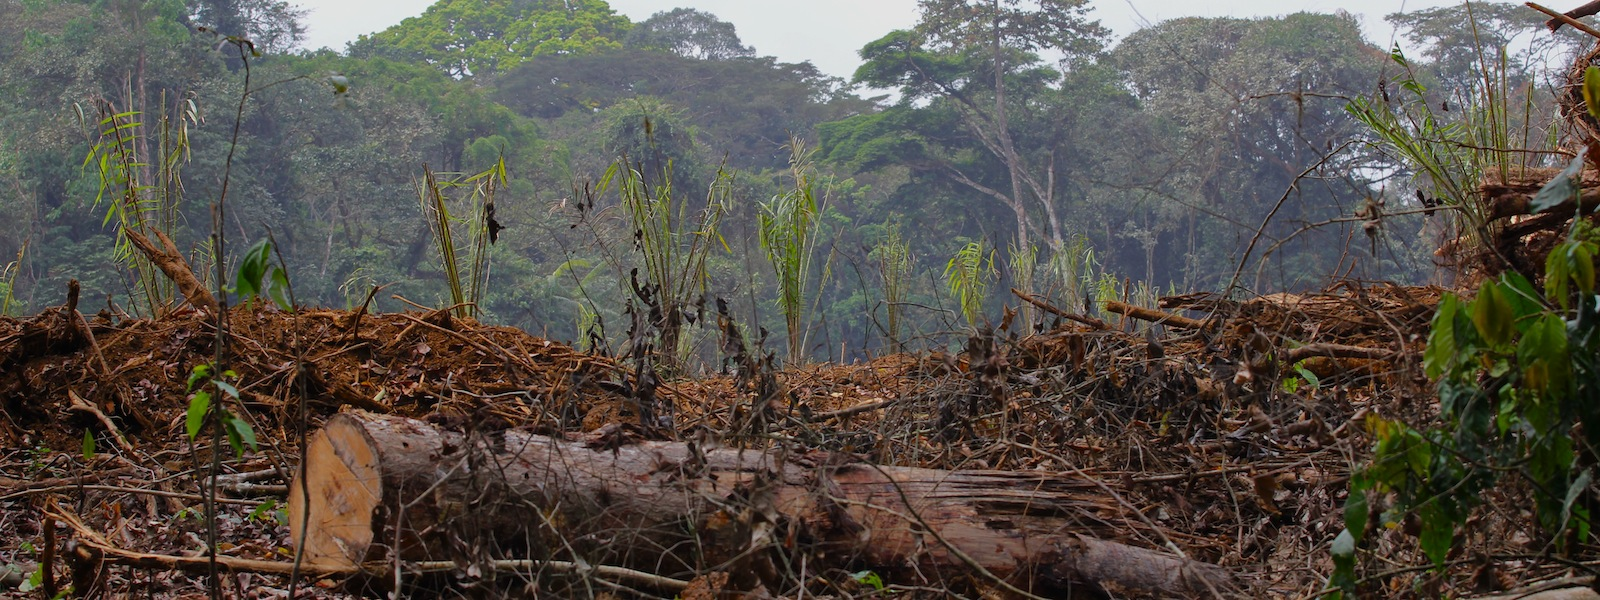 rainforest depletion caused by logging thesis Download thesis statement on rainforest in our database or order an original thesis paper that will be written by one of our staff writers and delivered according to.